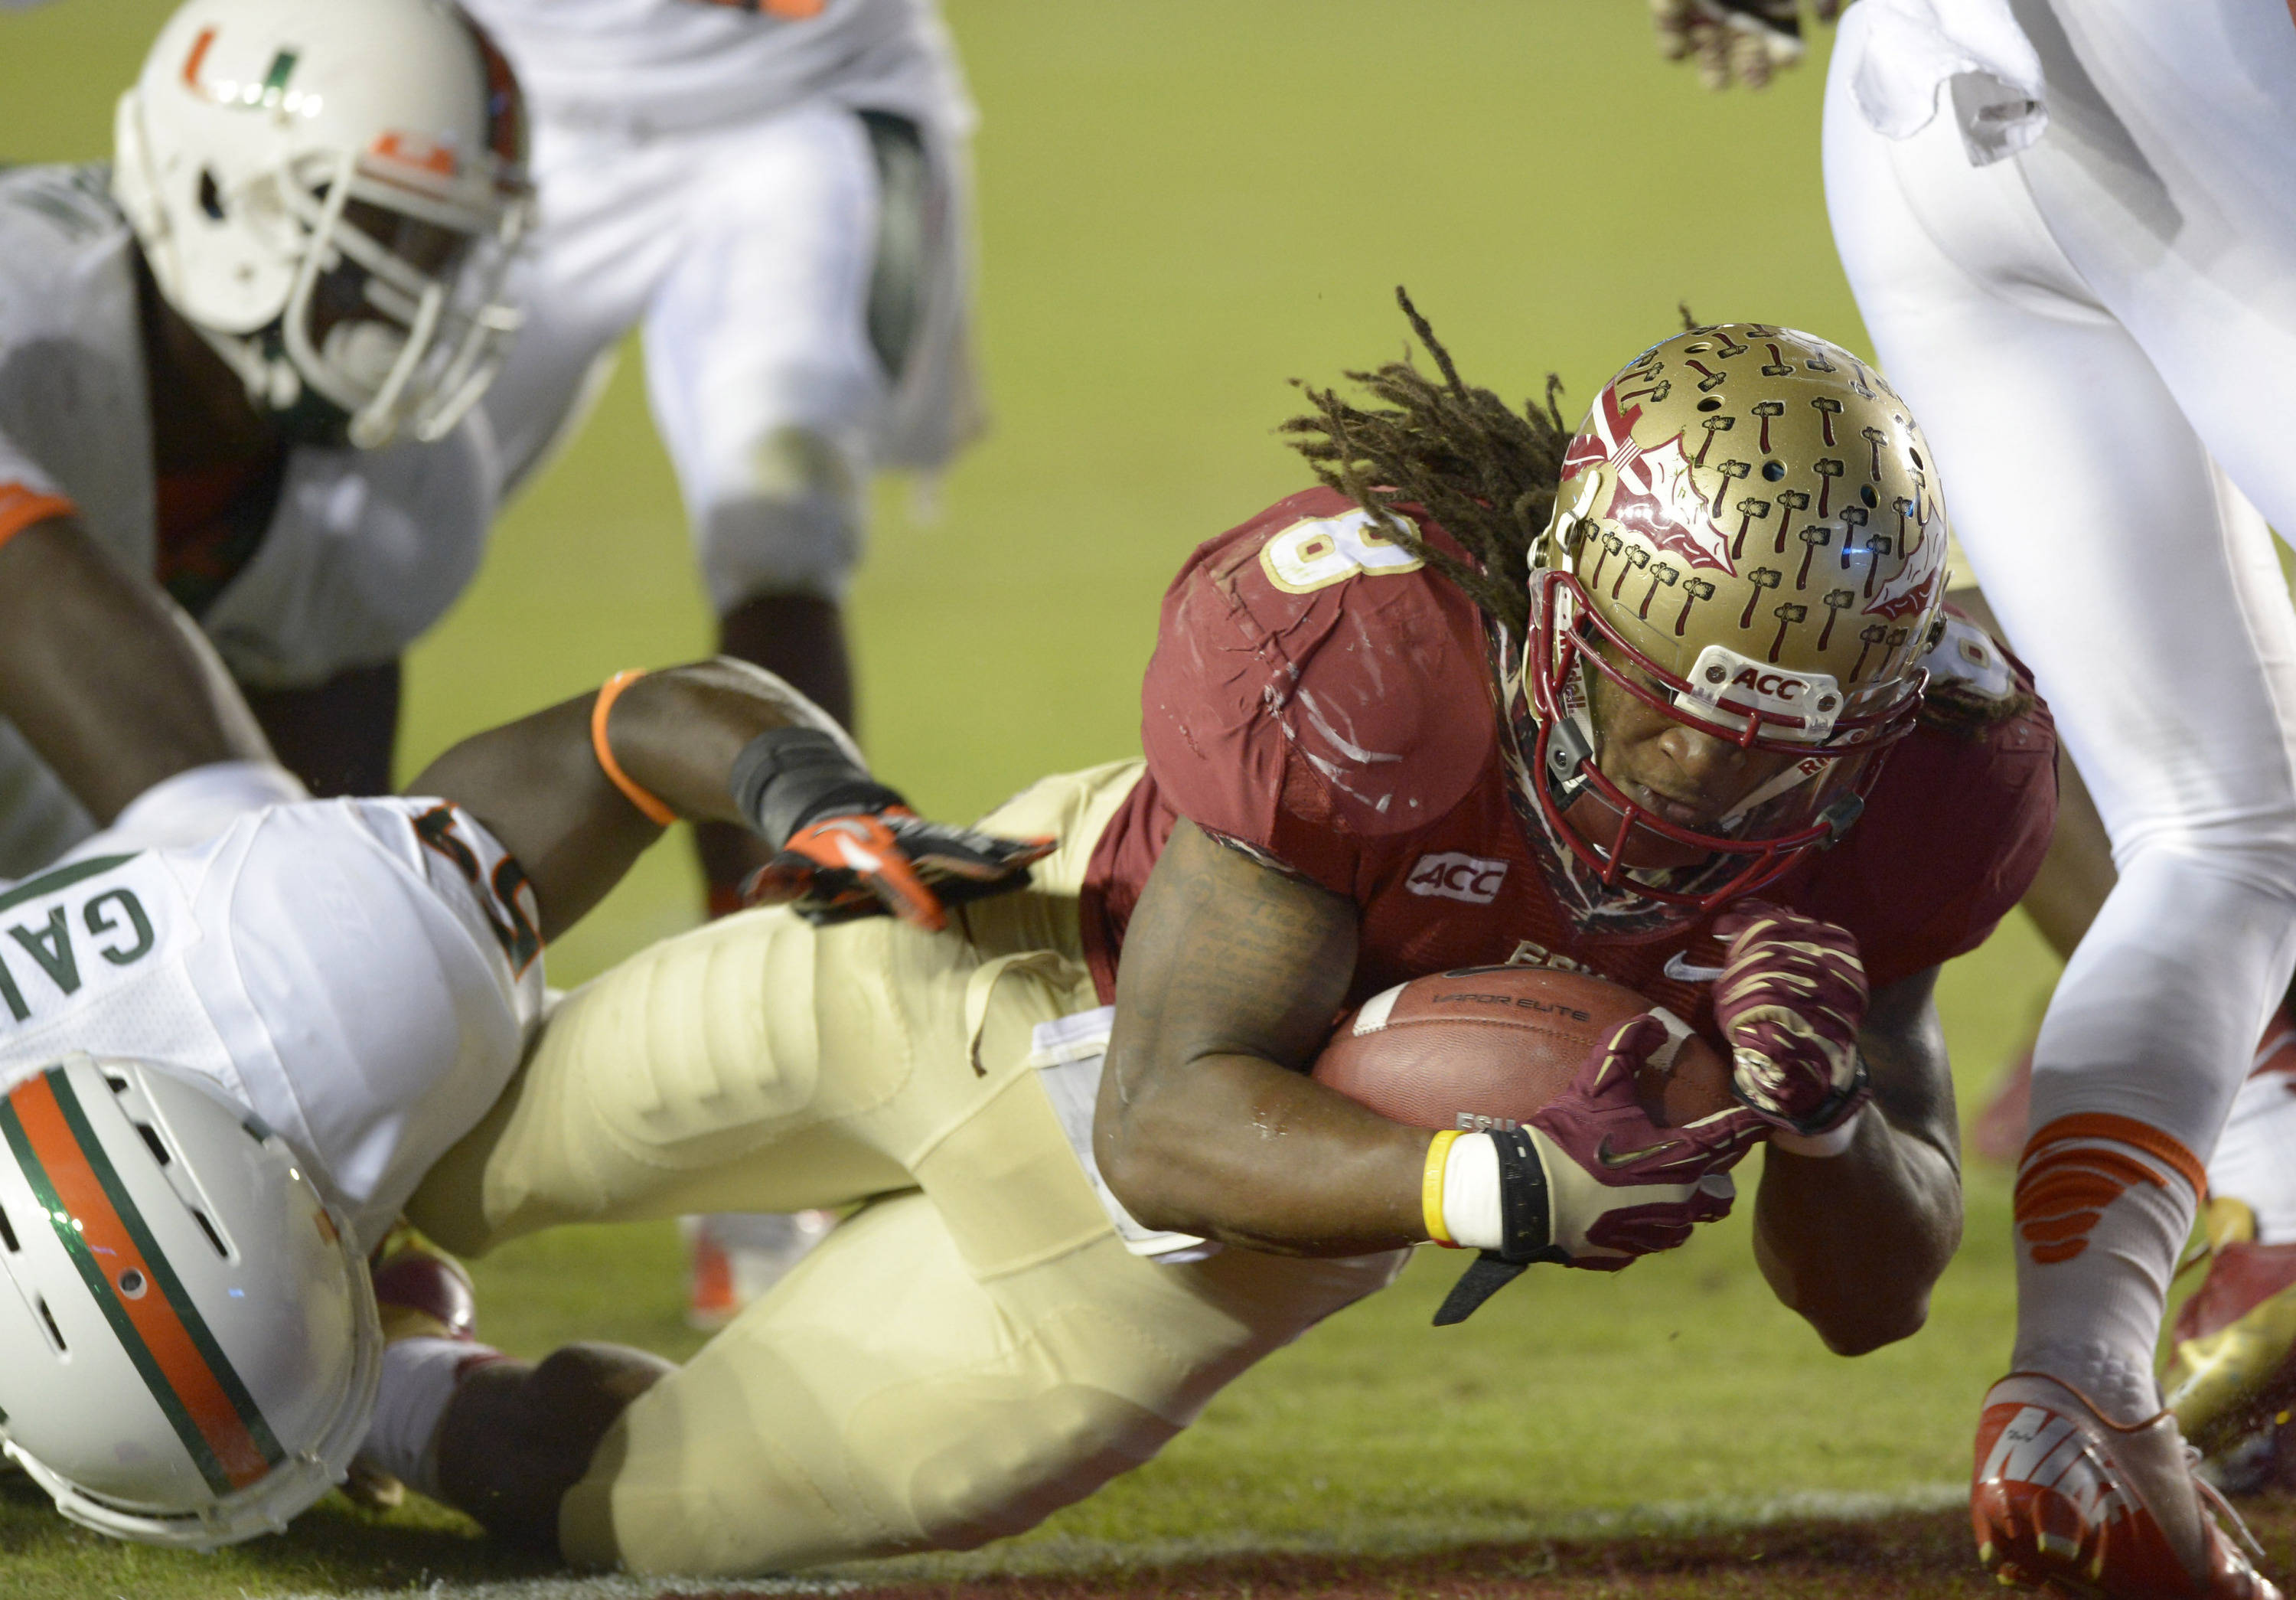 Florida State Seminoles running back Devonta Freeman (8) dives into the end zone for a touchdown against the Miami Hurricanes during the first quarter at Doak Campbell Stadium. Mandatory Credit: John David Mercer-USA TODAY Sports